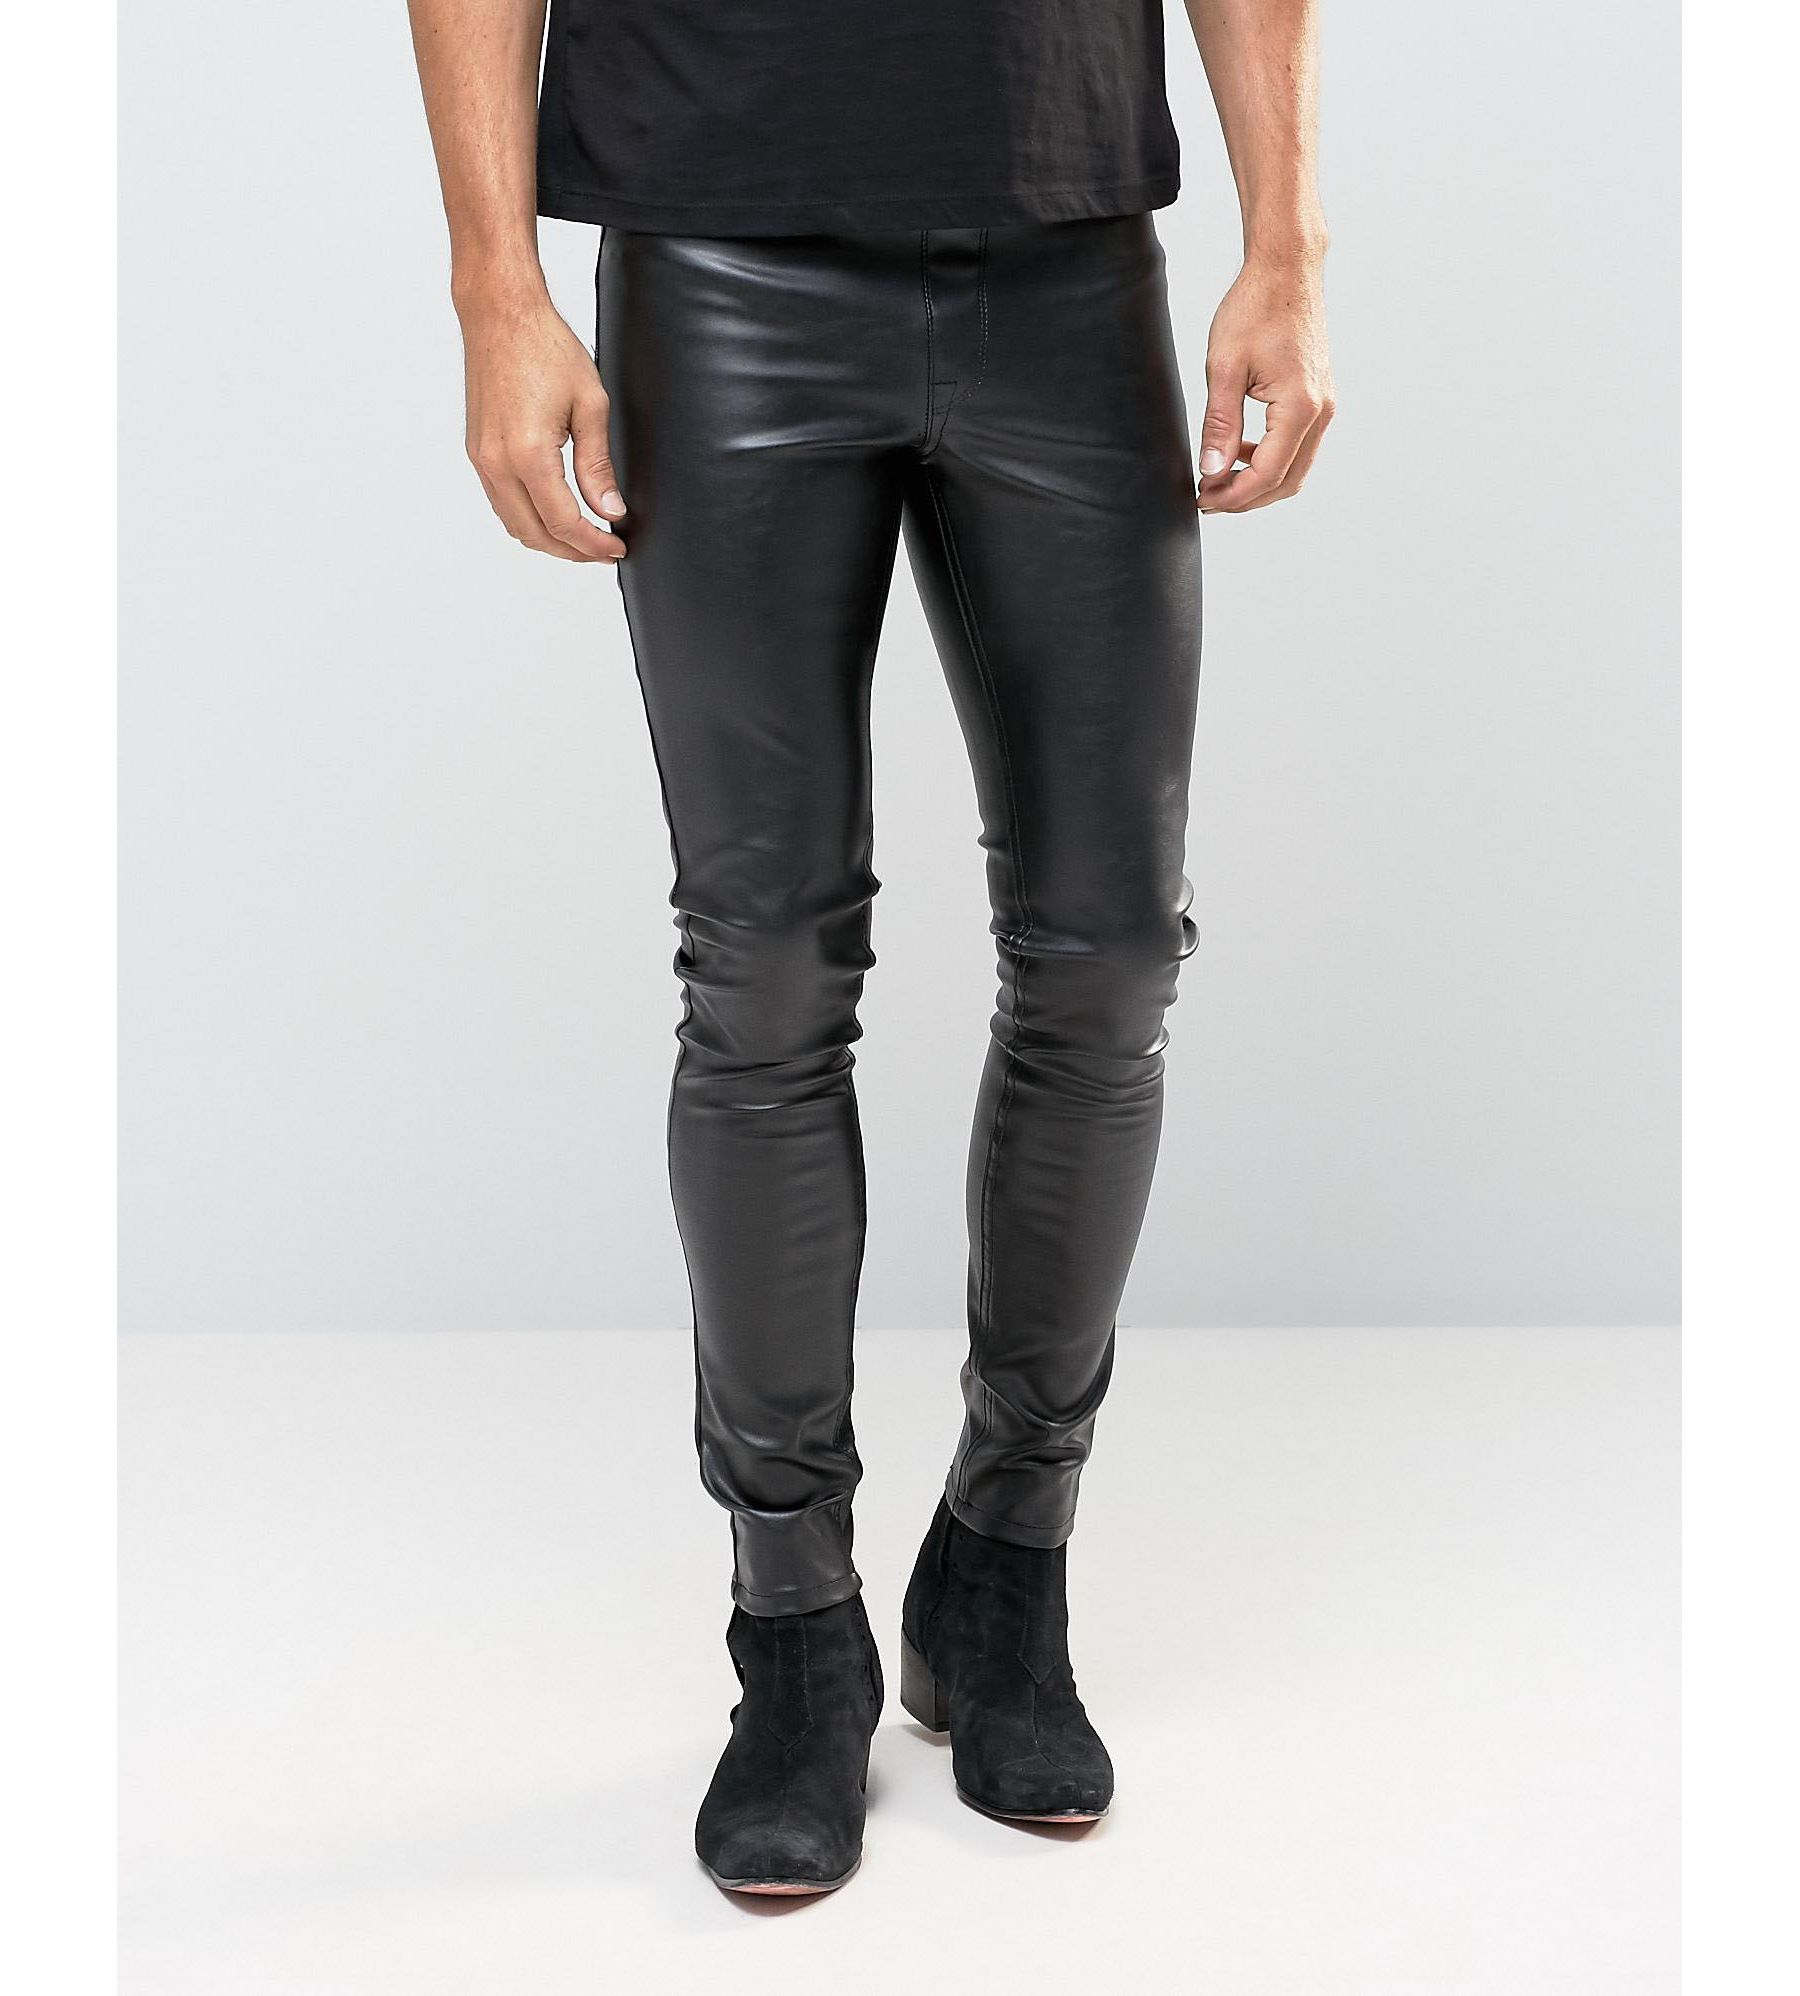 Priced at £25, sTitch meggings are inspired by celebrities like Russel Brand and Justin Bieber, who both favour leggings for casual daytime wear. They are the brainchild of three men from London.